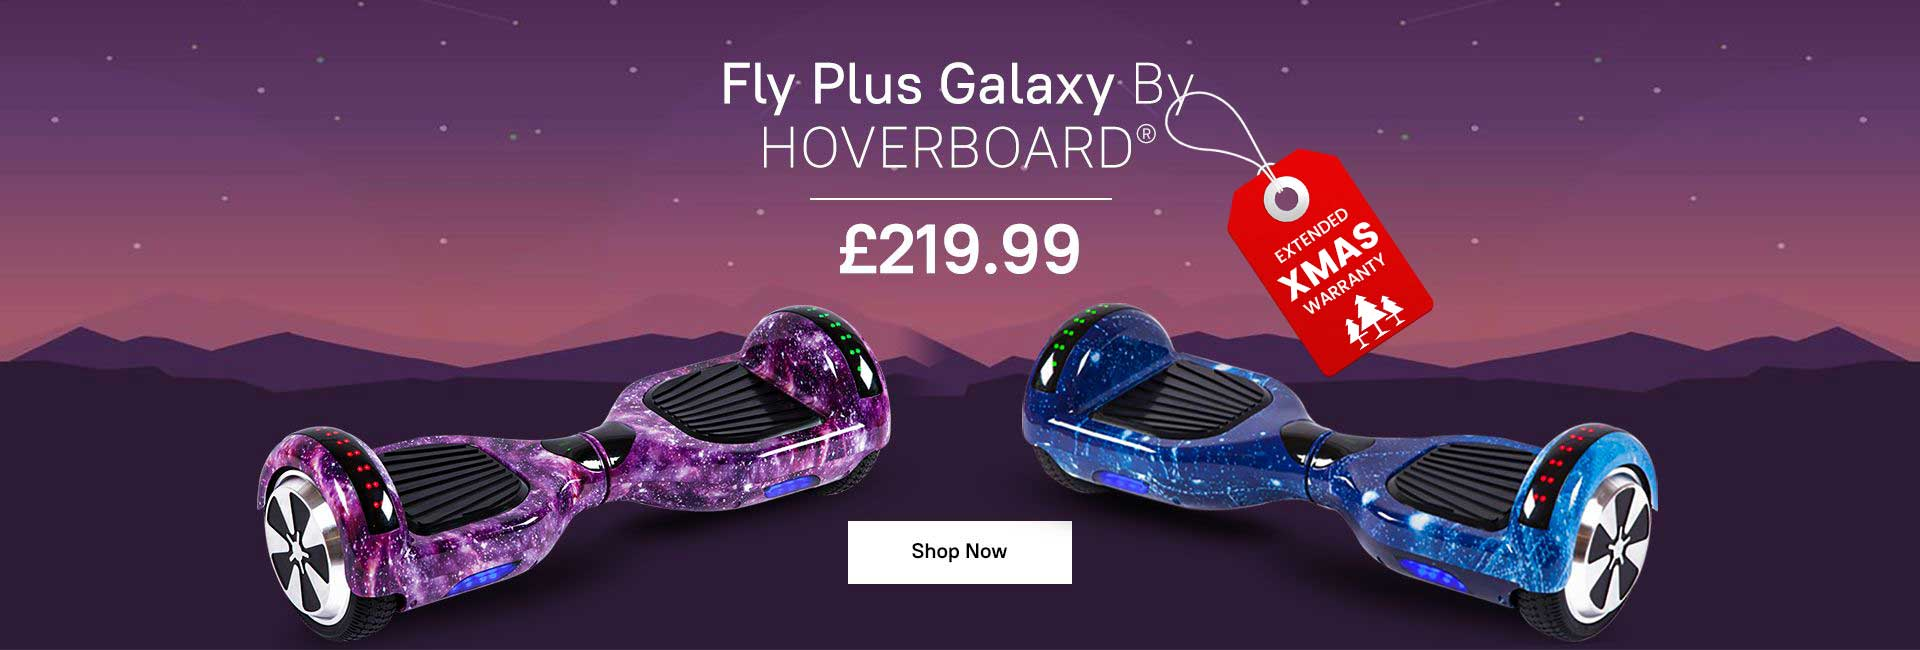 fly-plus-hoverboard-deals